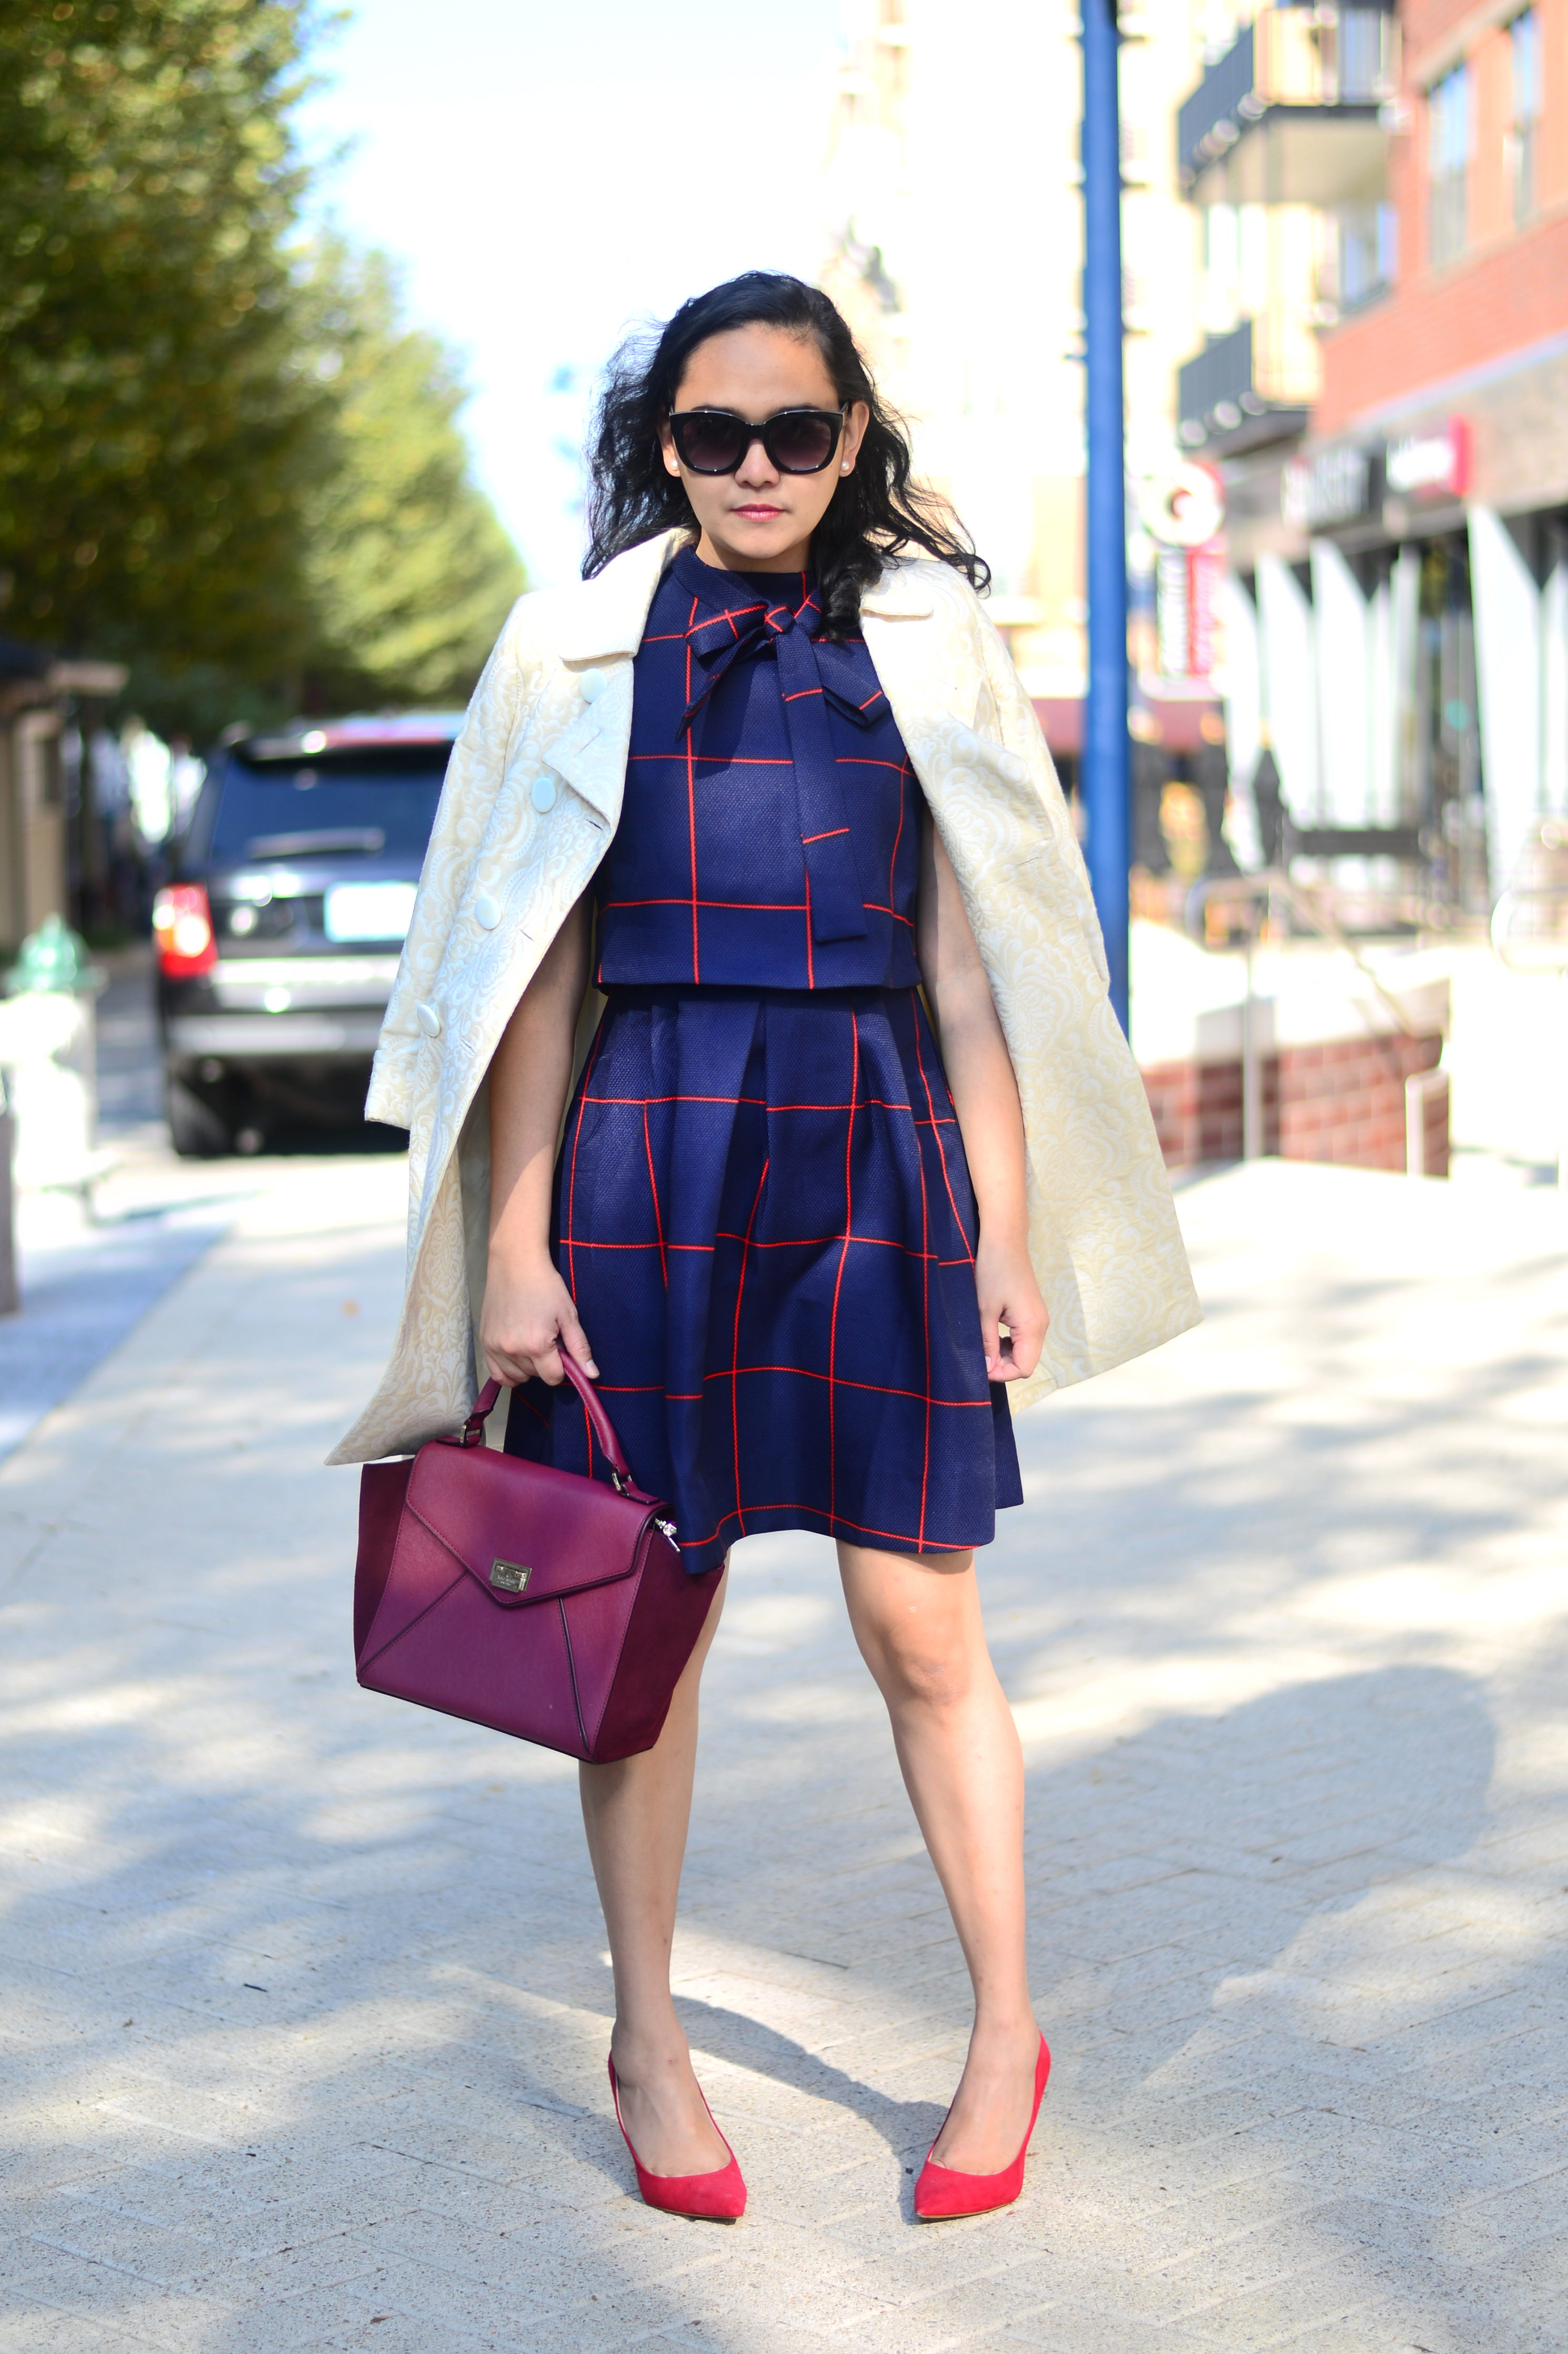 Classy Patterns and Statement Coat